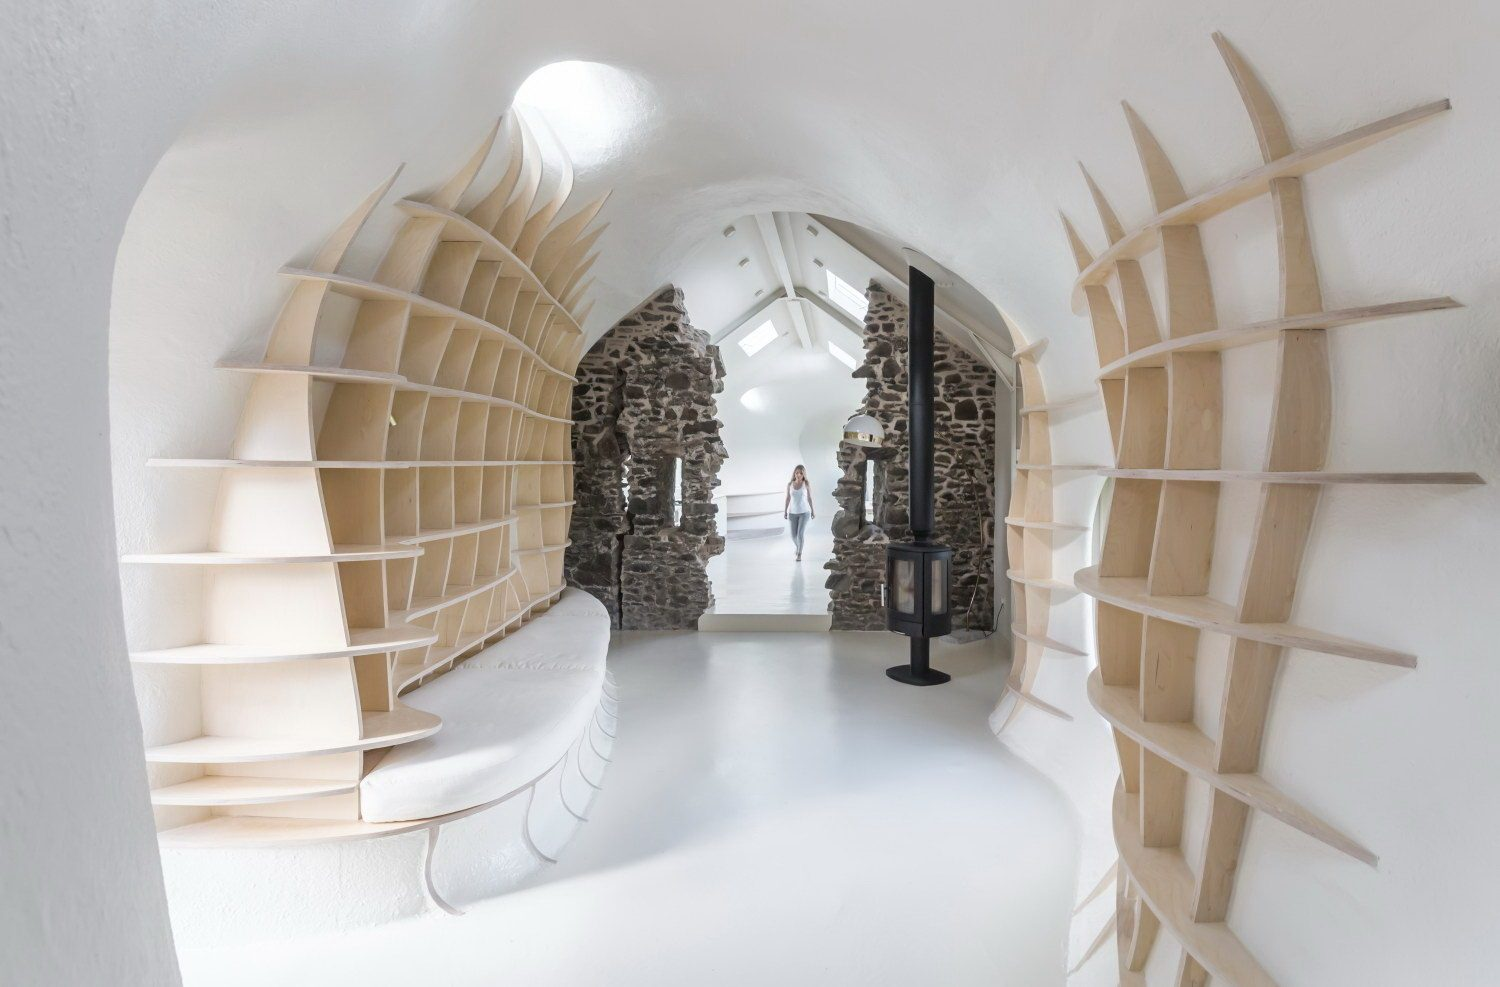 The Ruins Studio by Lily Jencks + Nathanael Dorent